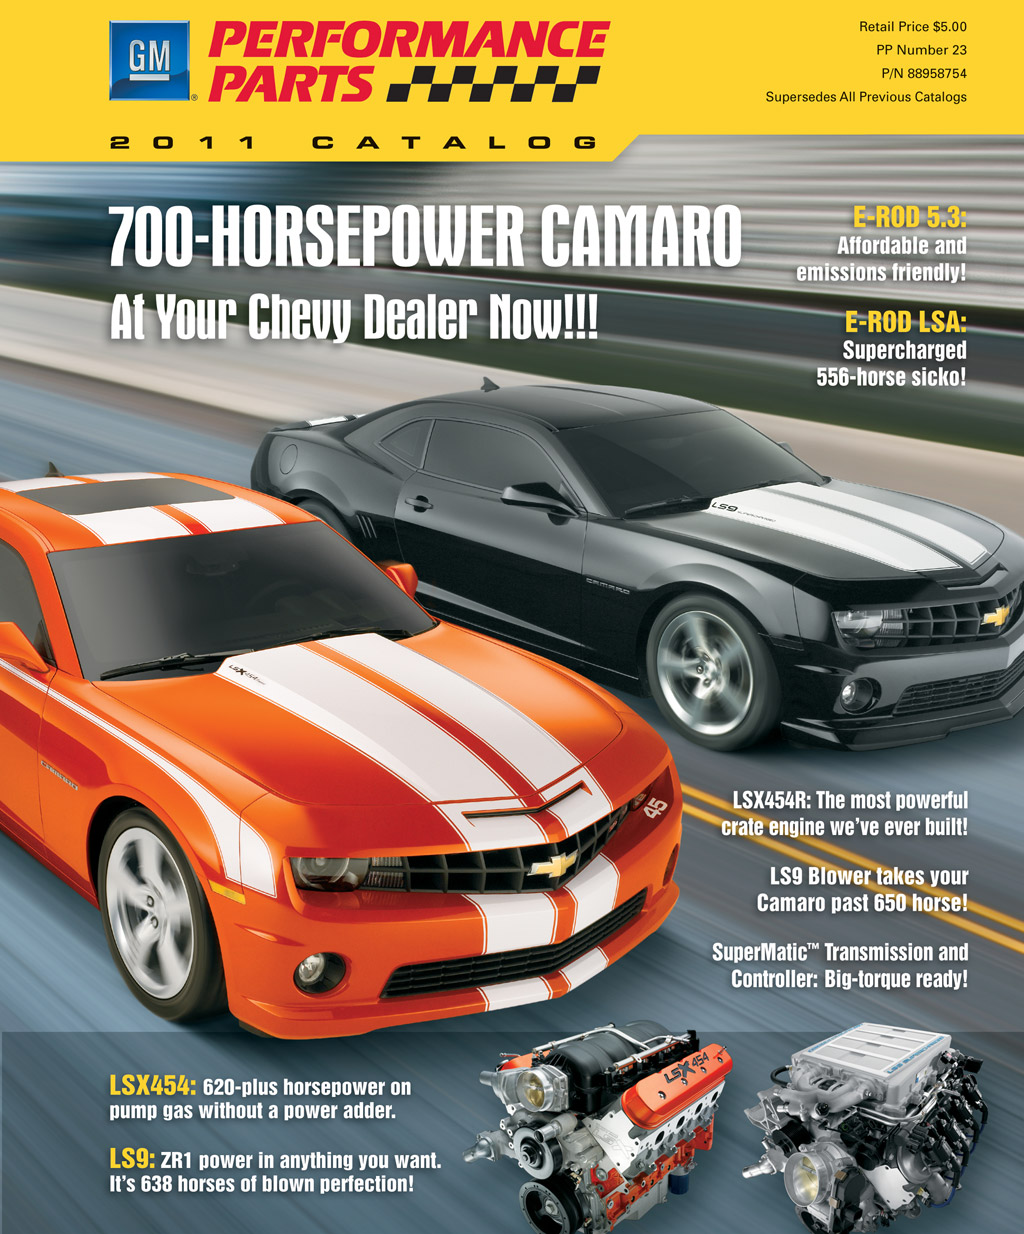 Gm Performance Parts Updates 2011 Catalog Lists 700 Hp